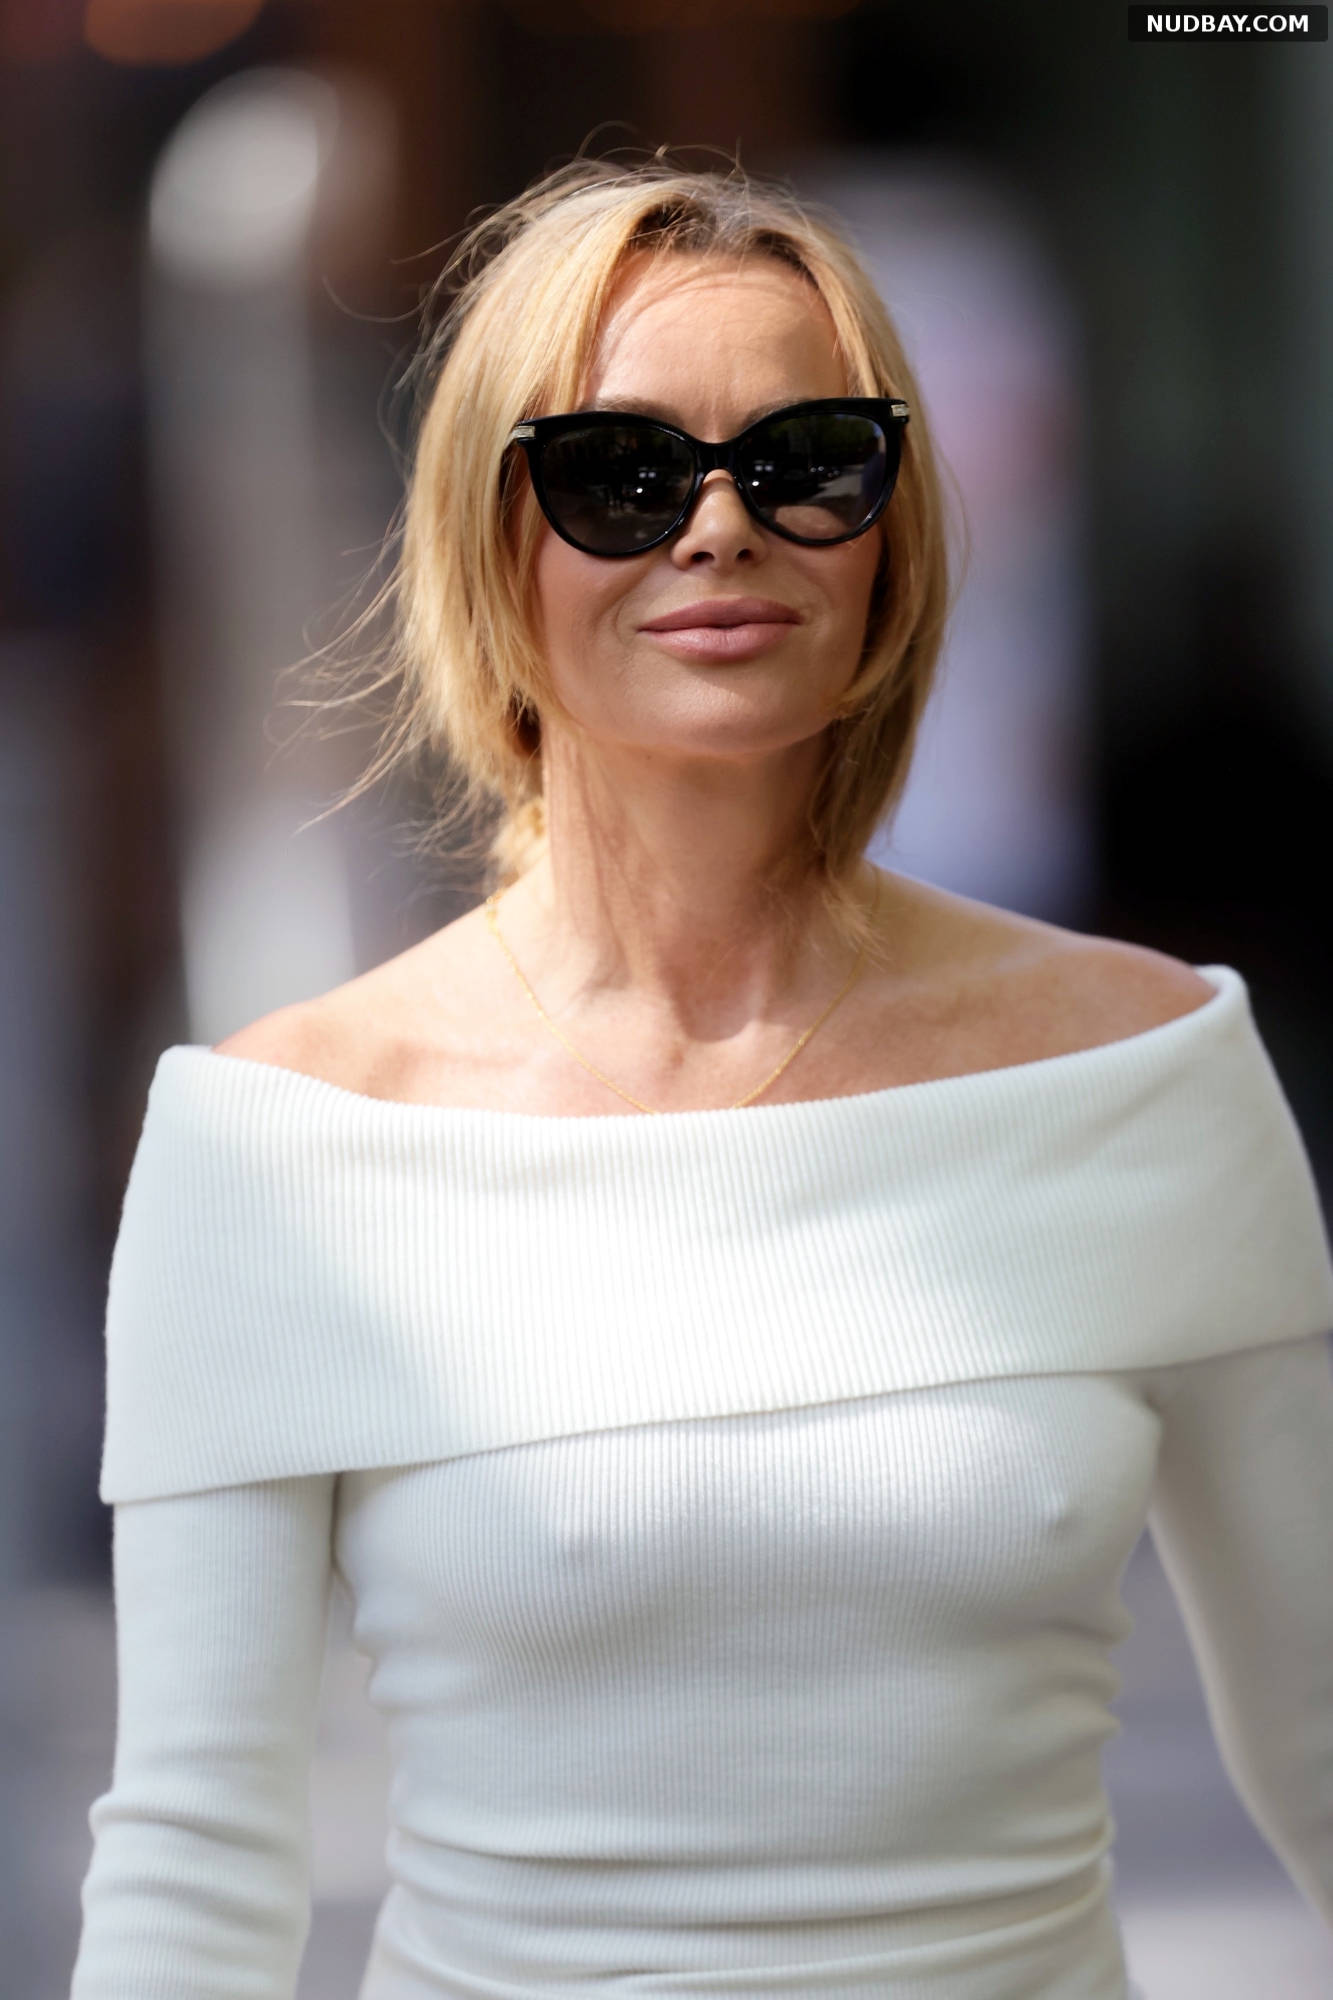 Amanda Holden in a white tight dress at Heart radio in London May 19 2021